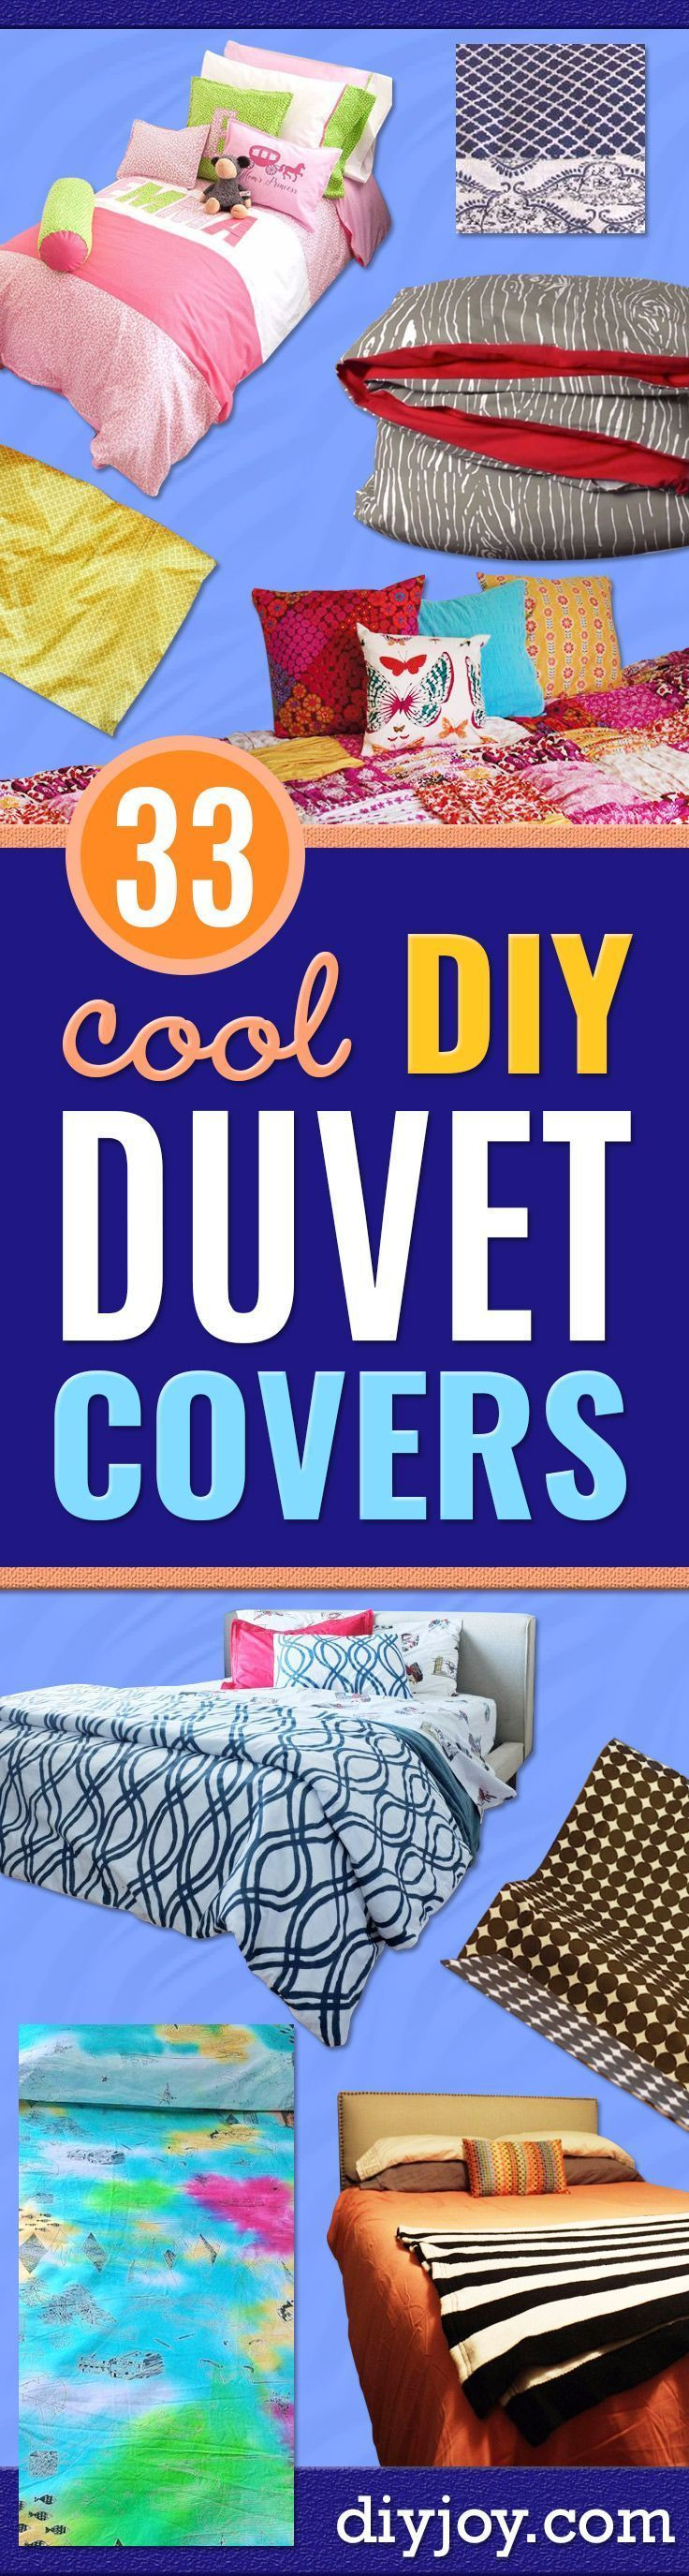 DIY Duvet Covers - Easy Sewing Projects and No Sew Ideas for Duvets - Cheap Bedroom Decor Ideas on A Budget - How To Sew A Duvet Cover and Bedding Tutorial - Creative Covers for Bed - Quick Projects for Making Designer Duvets - Awesome Home Decor Ideas and Crafts http://diyjoy.com/diy-duvet-covers #sewingideas